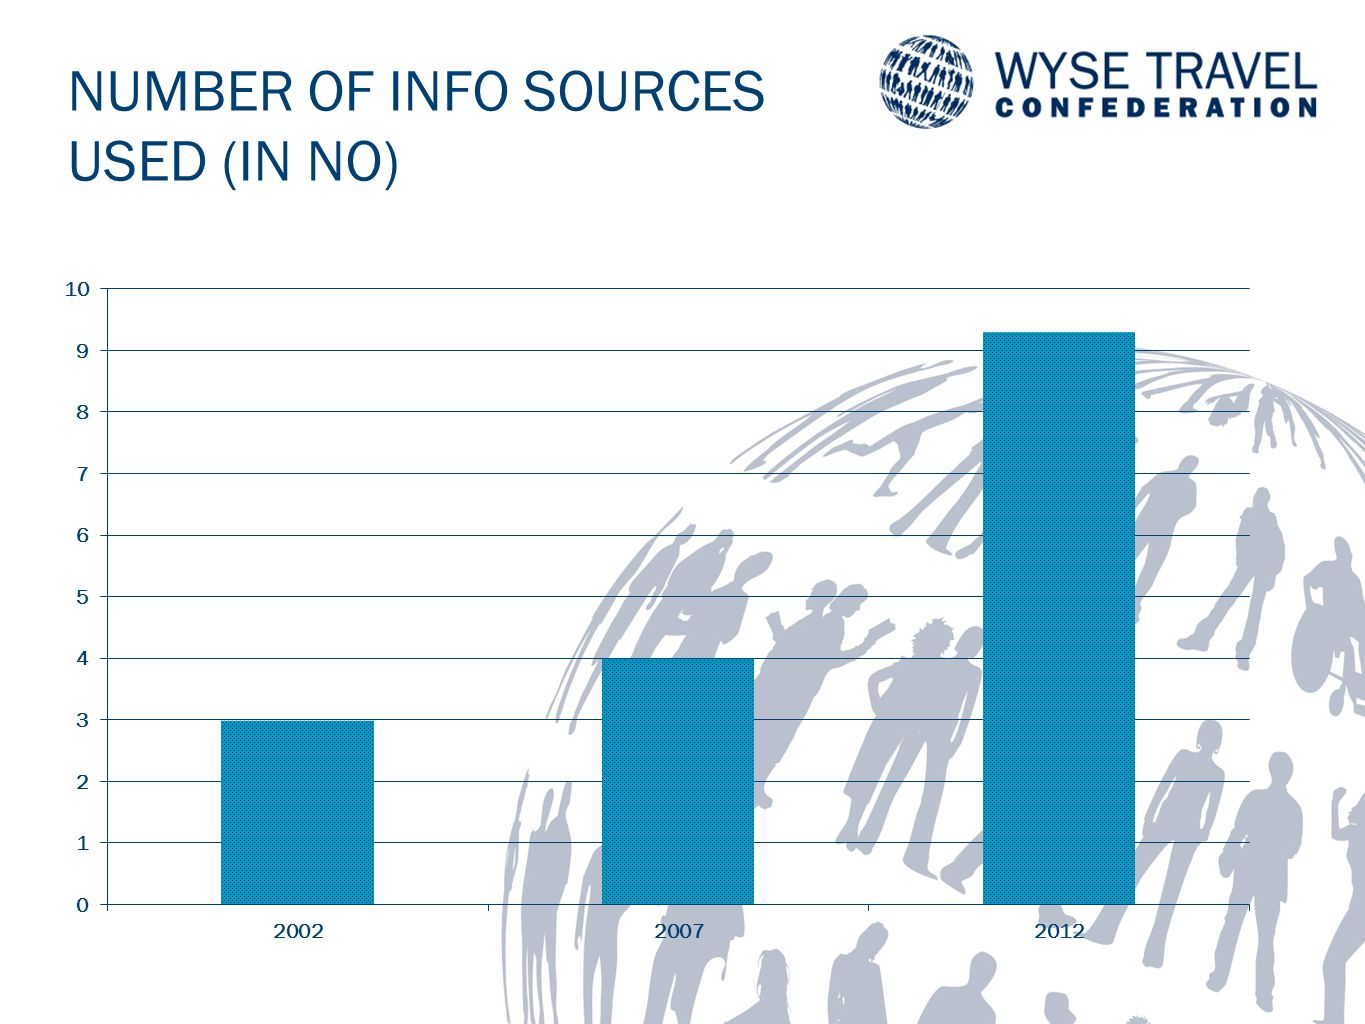 NUMBER OF INFO SOURCES USED (IN NO)